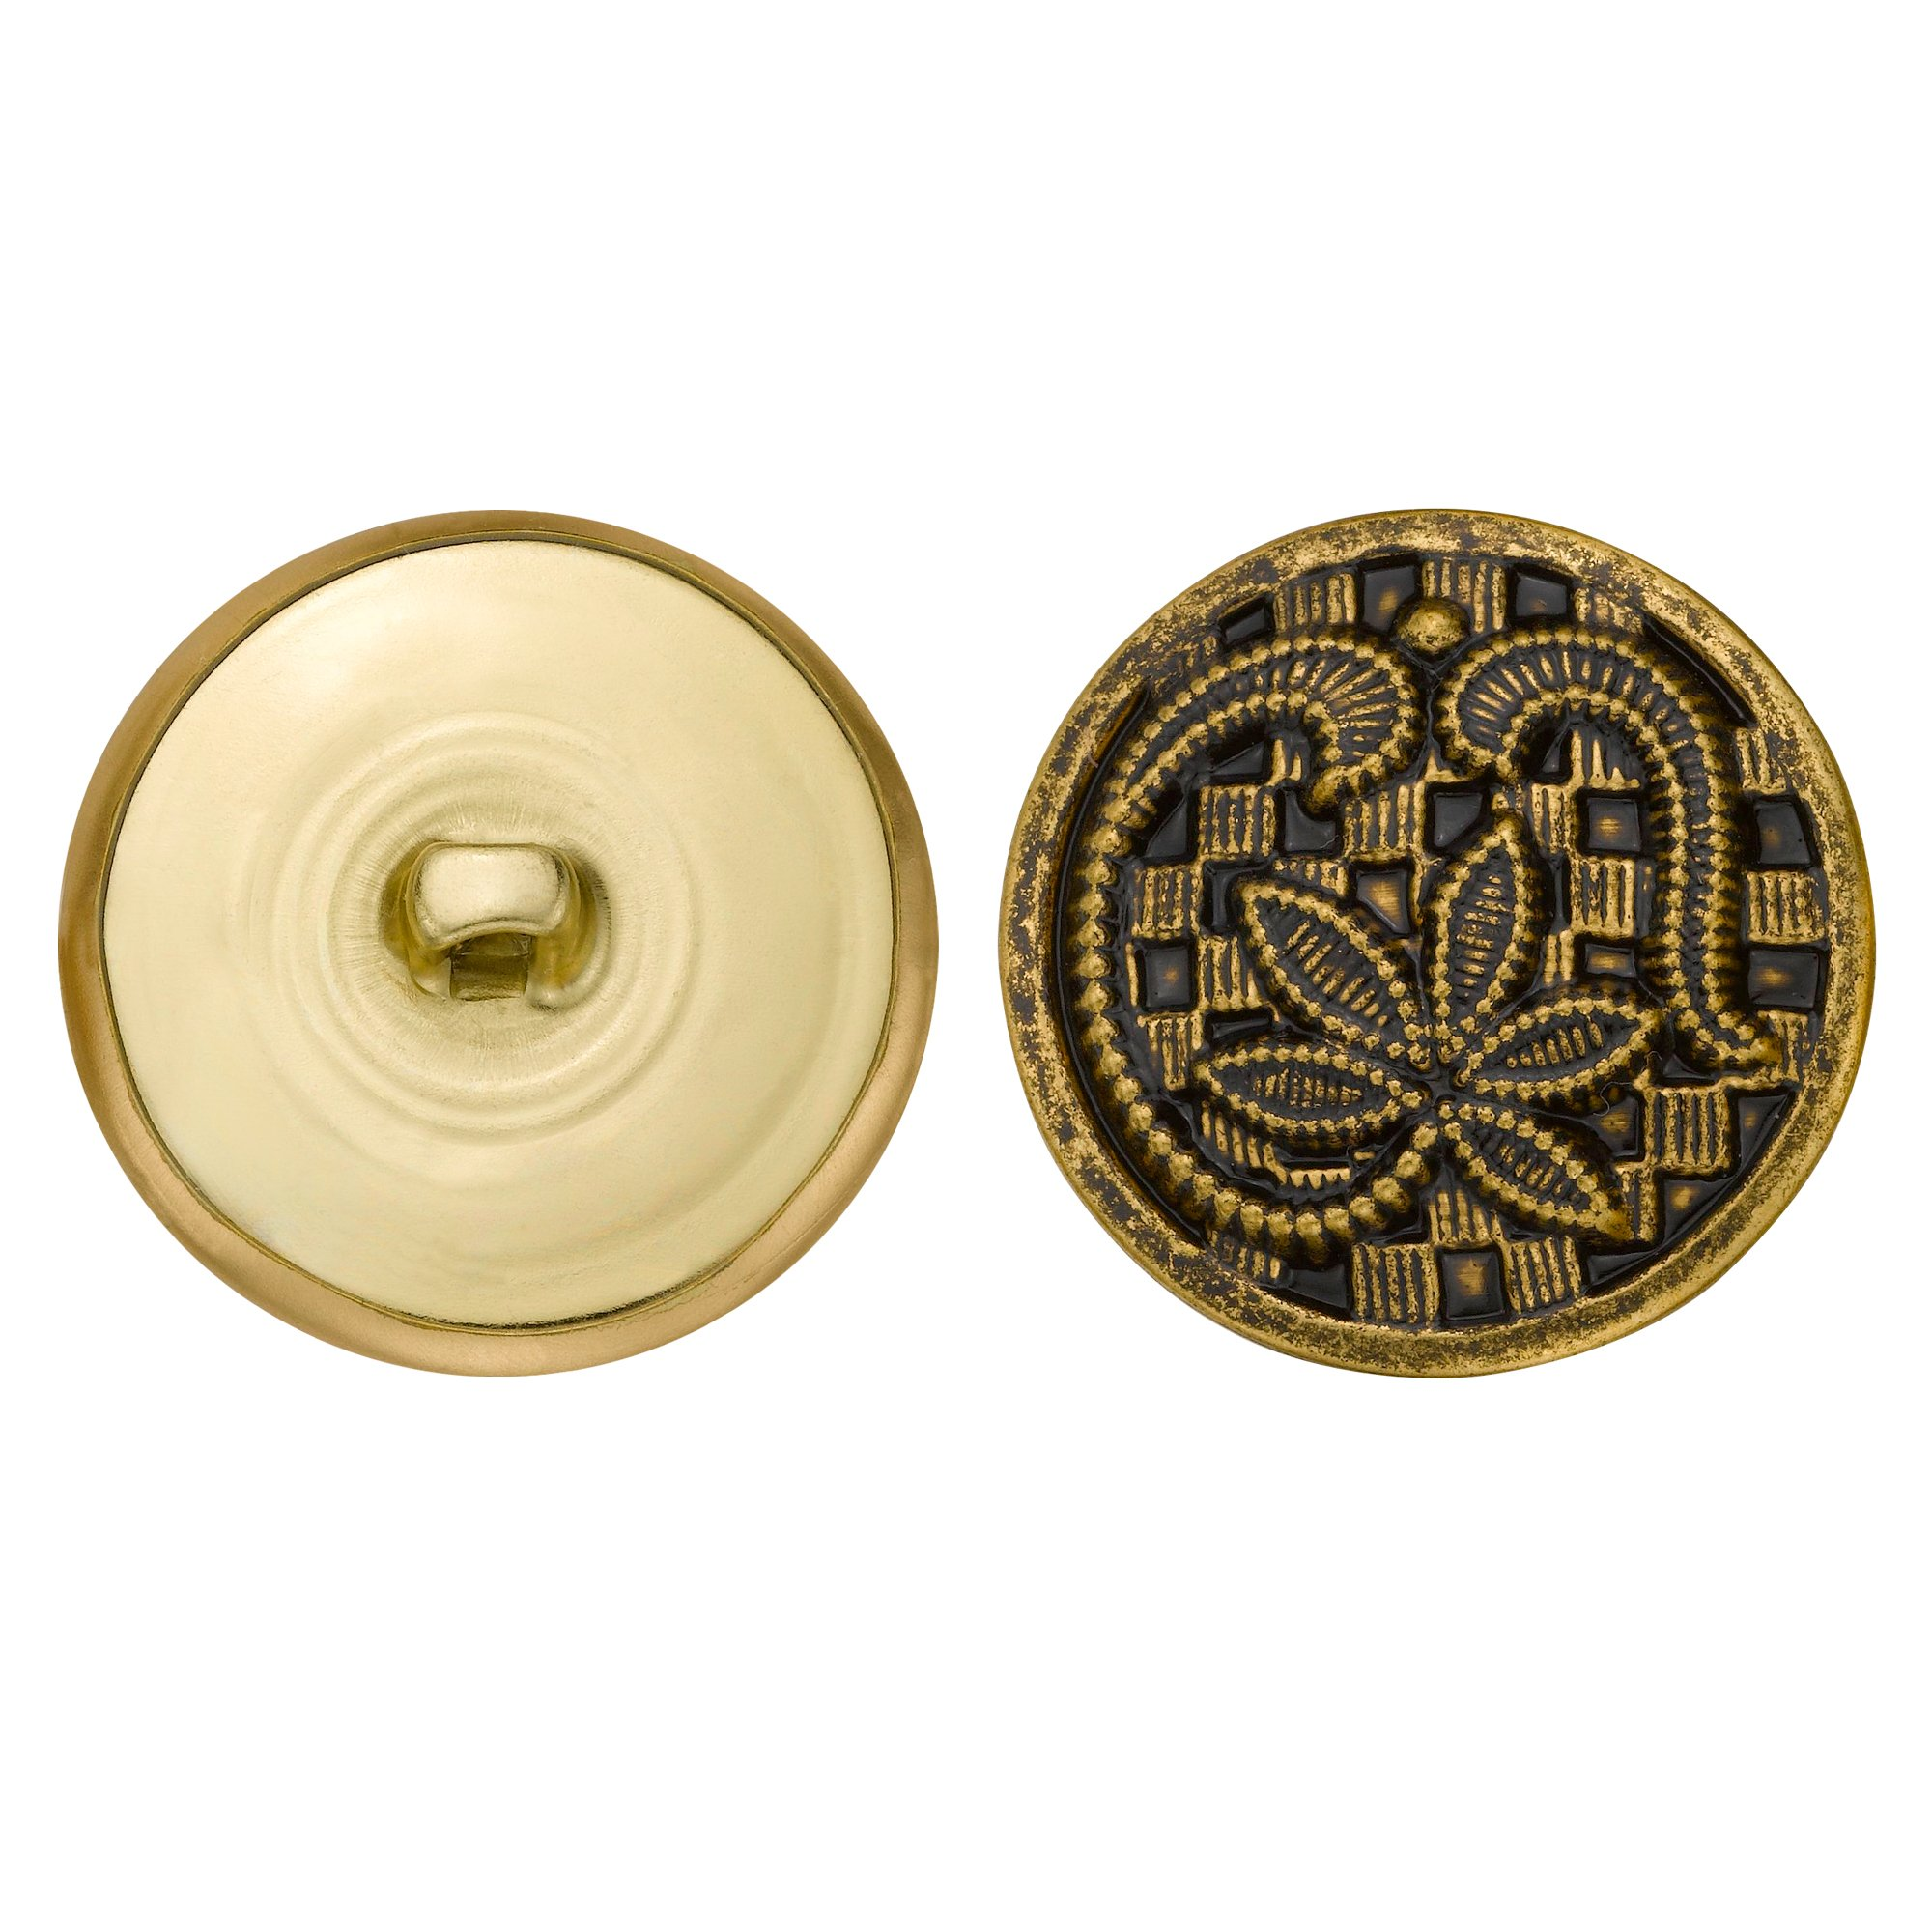 C&C Metal Products 5140 Leaf Over Checkers Metal Button, Size 45 Ligne, Antique Gold, 36-Pack